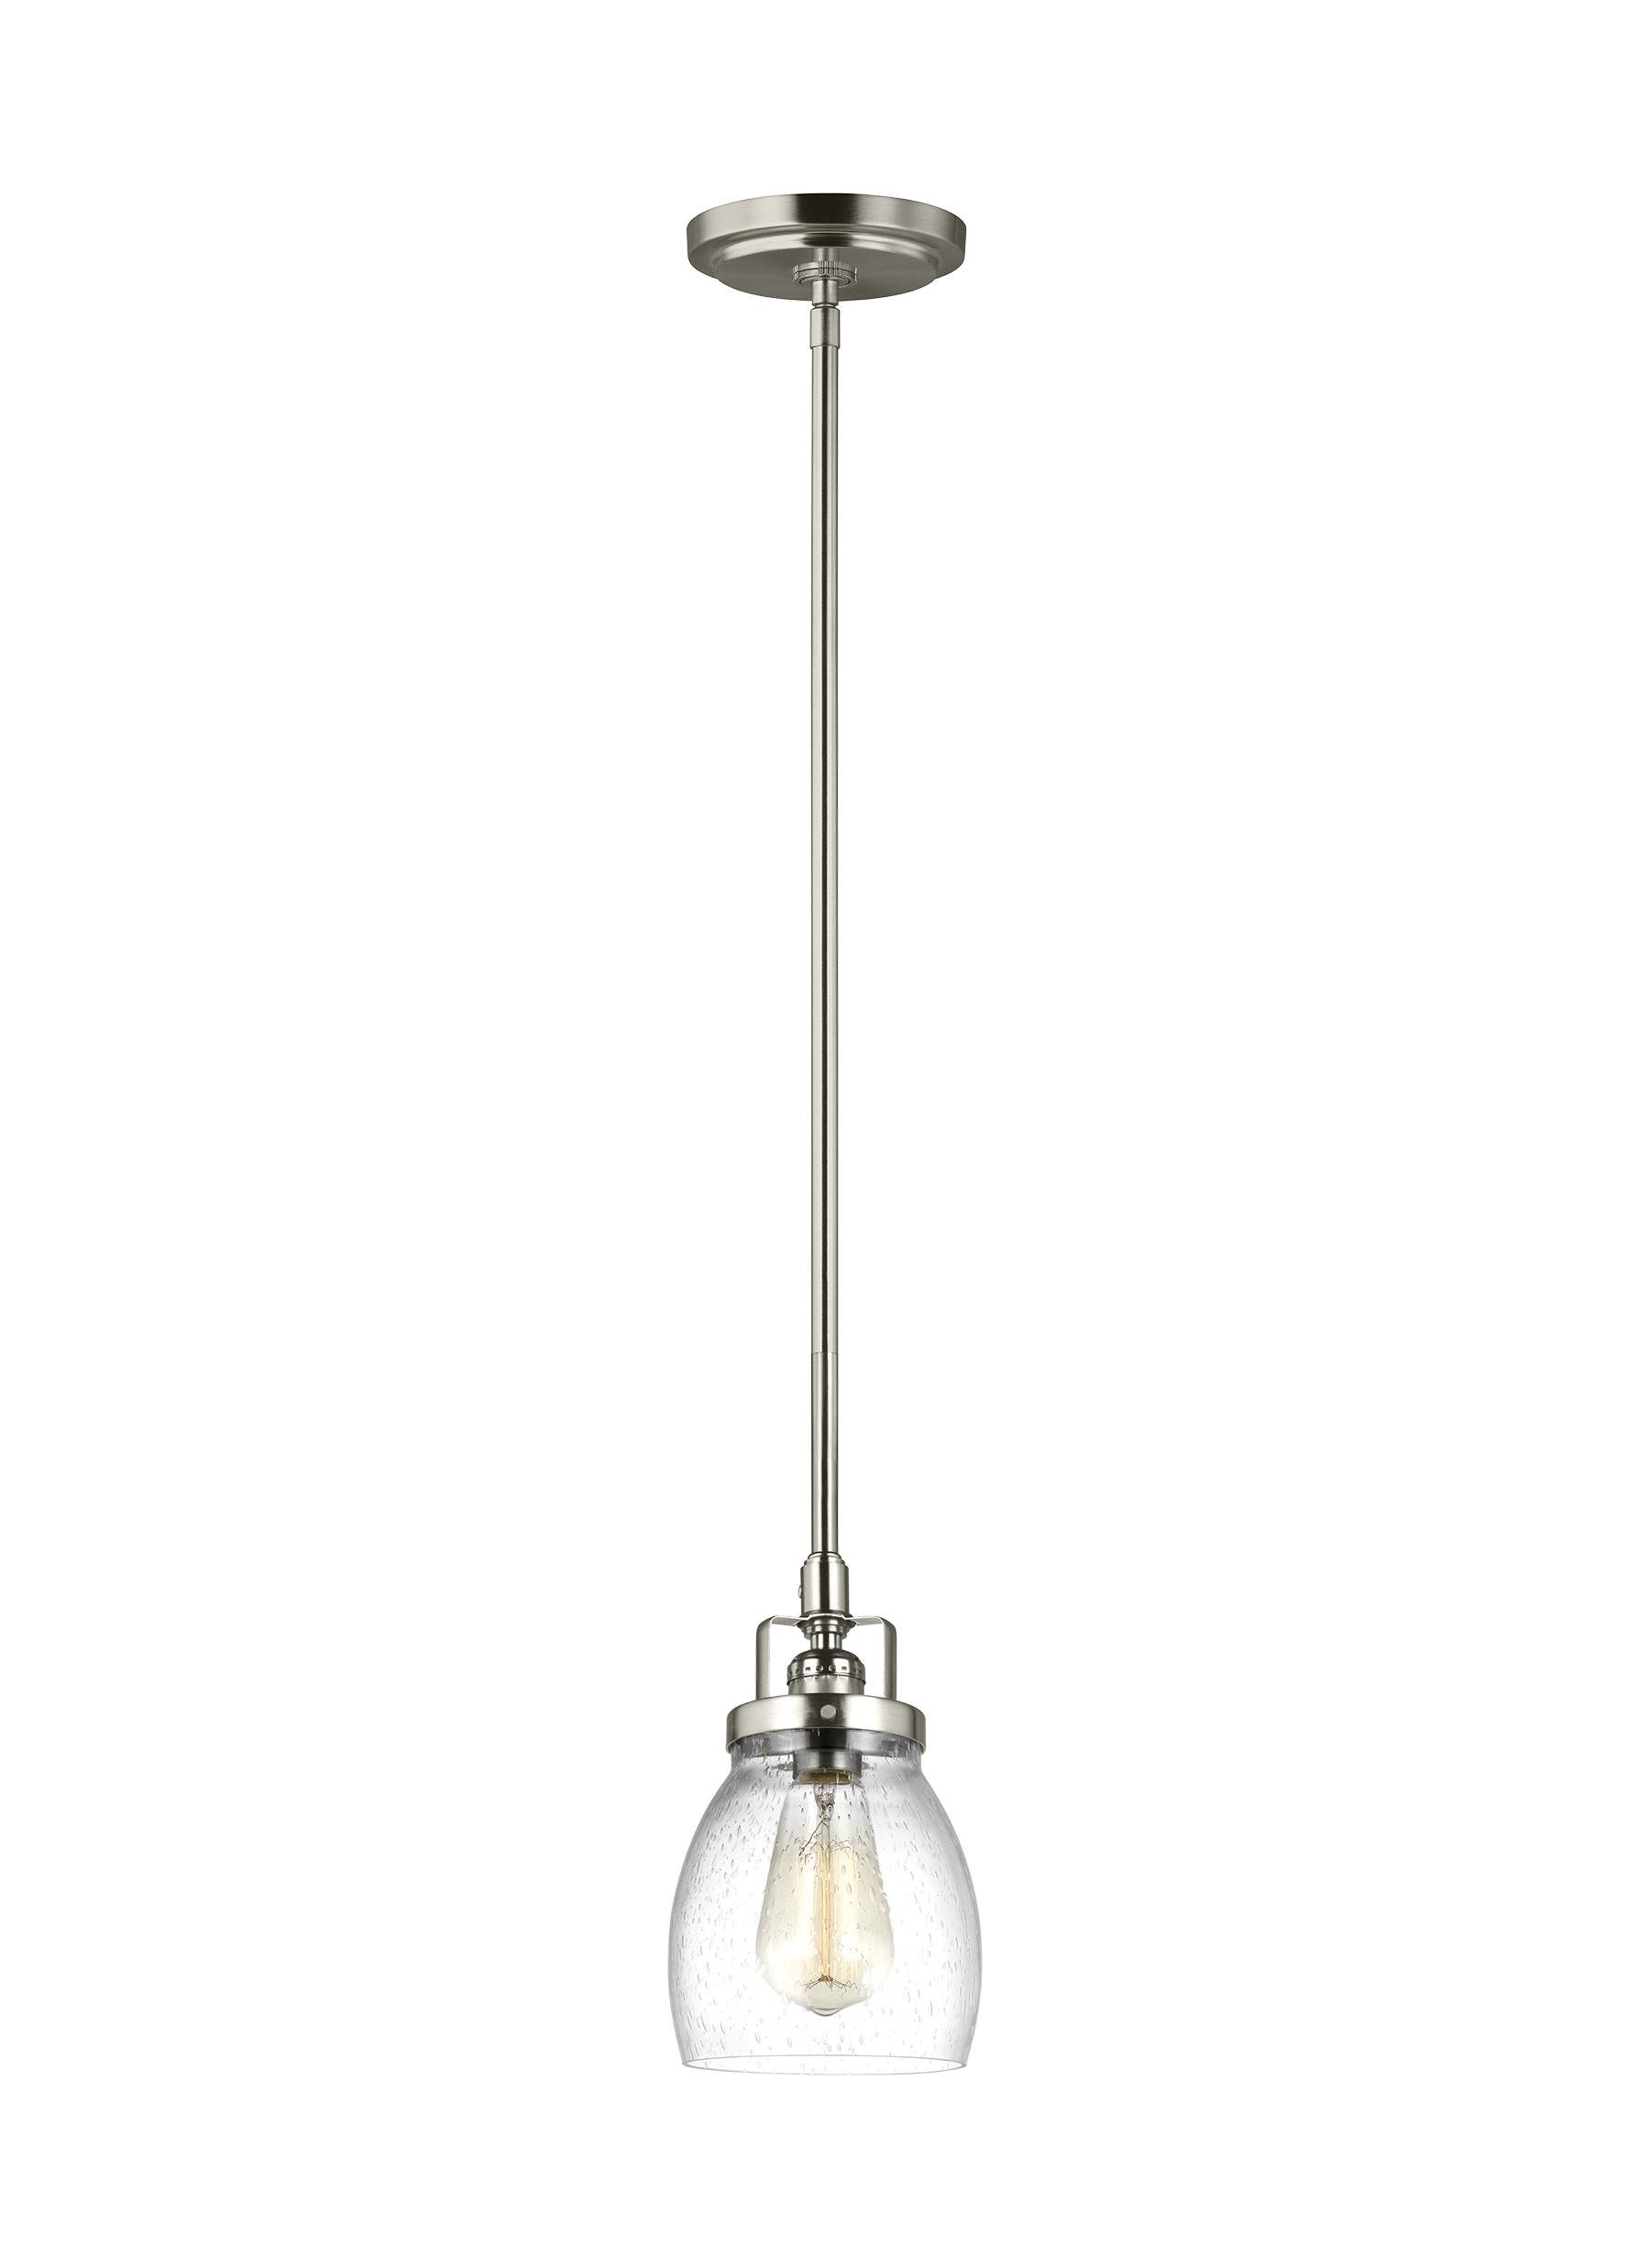 Houon 1 Light Cone Bell Pendant With Regard To Well Known Neal 1 Light Single Teardrop Pendants (Gallery 19 of 20)